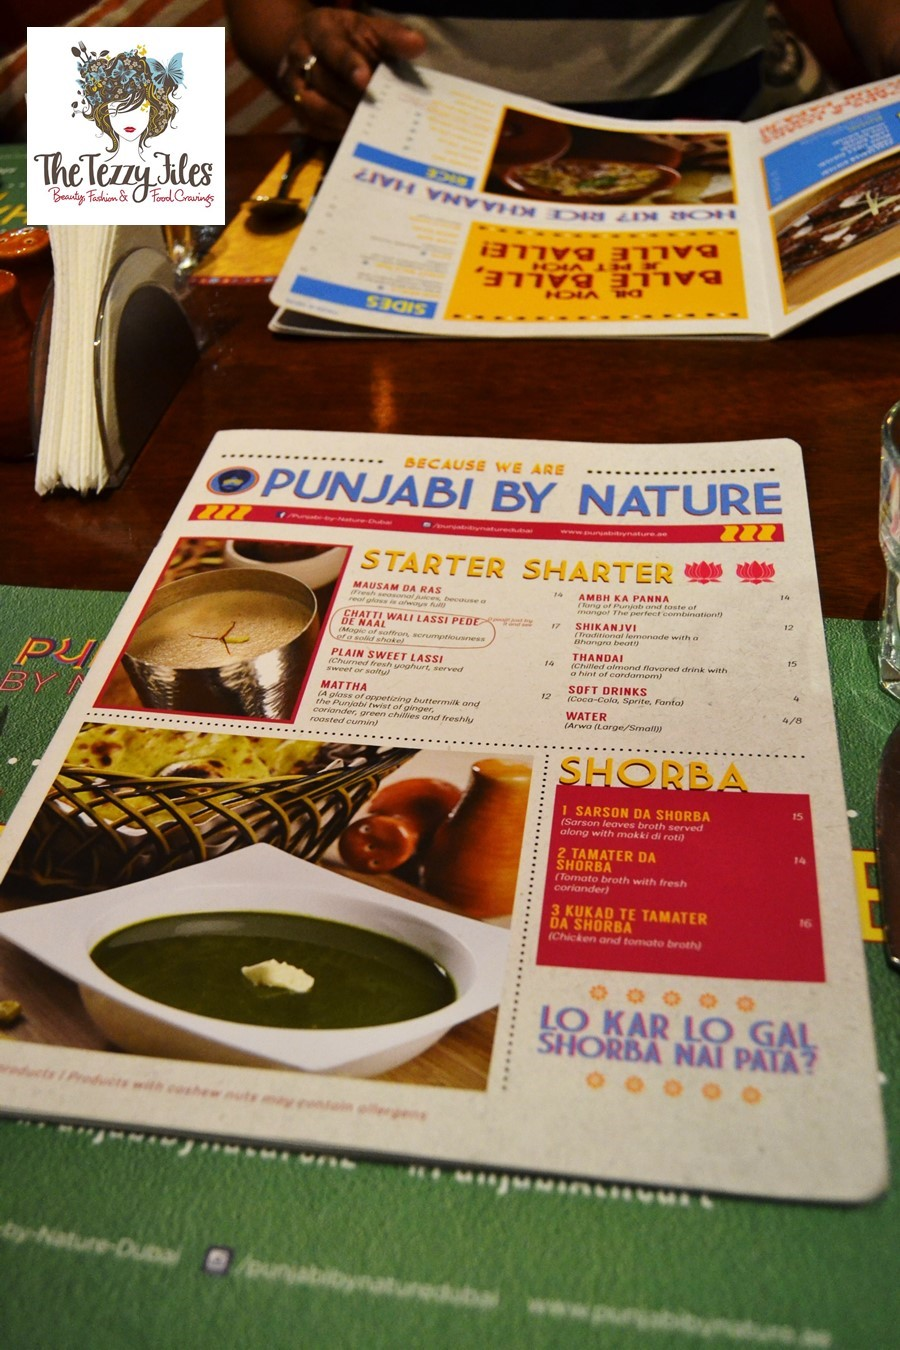 Punjabi by Nature review by The Tezzy Files Dubai Food Blogger (22)